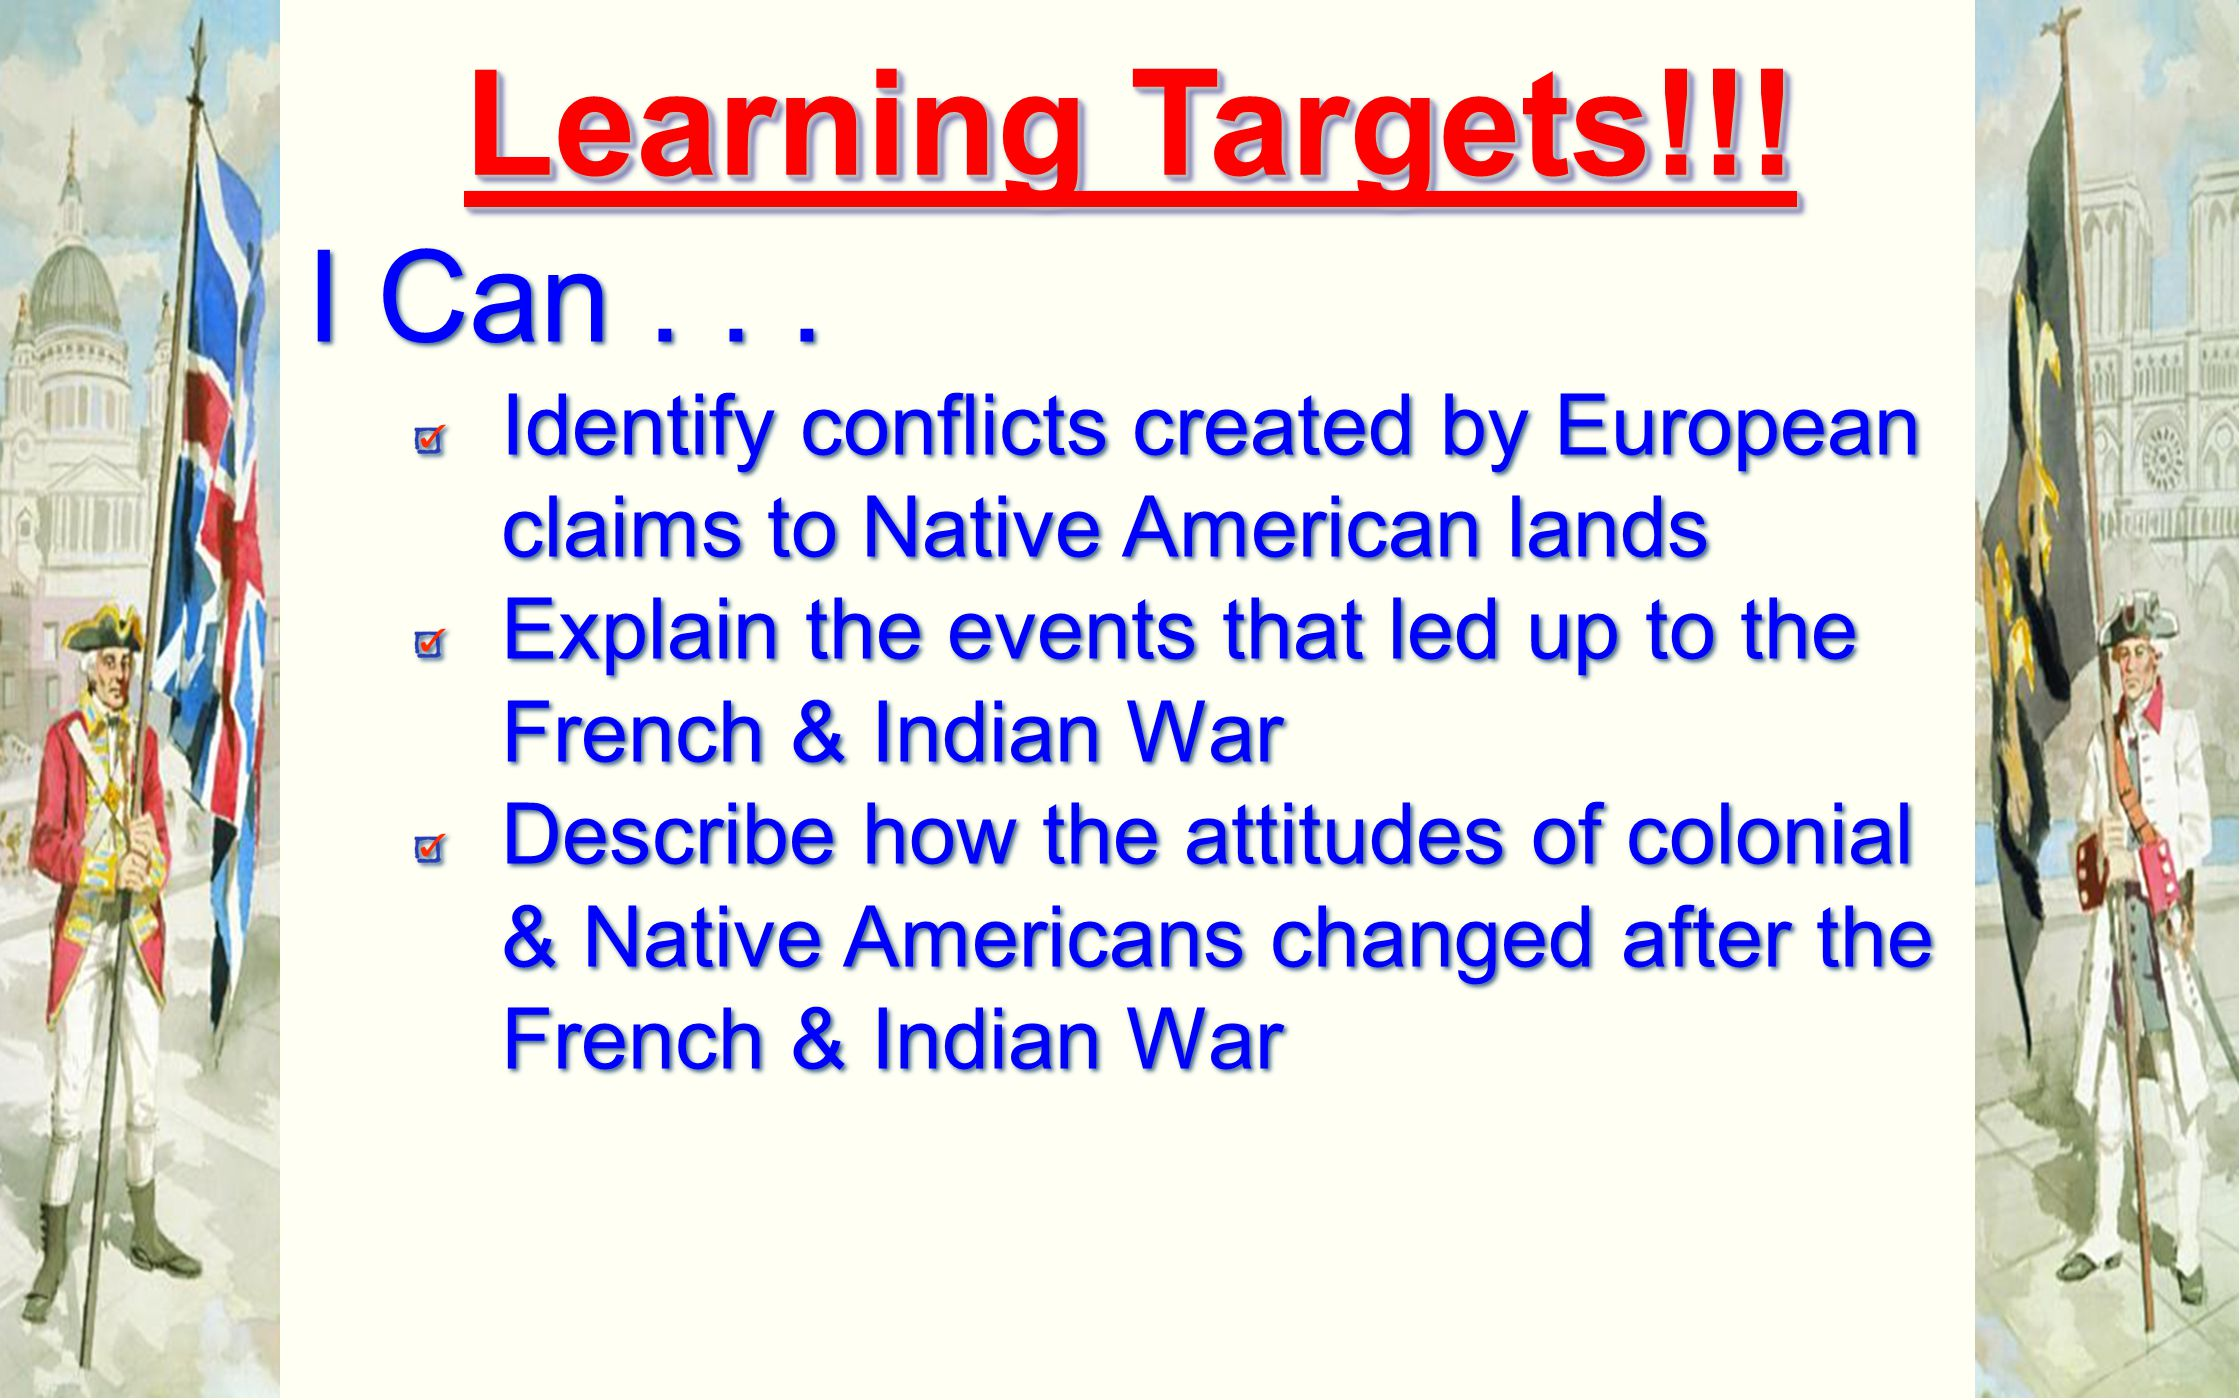 Learning Targets!!! I Can . . . Identify conflicts created by European claims to Native American lands.